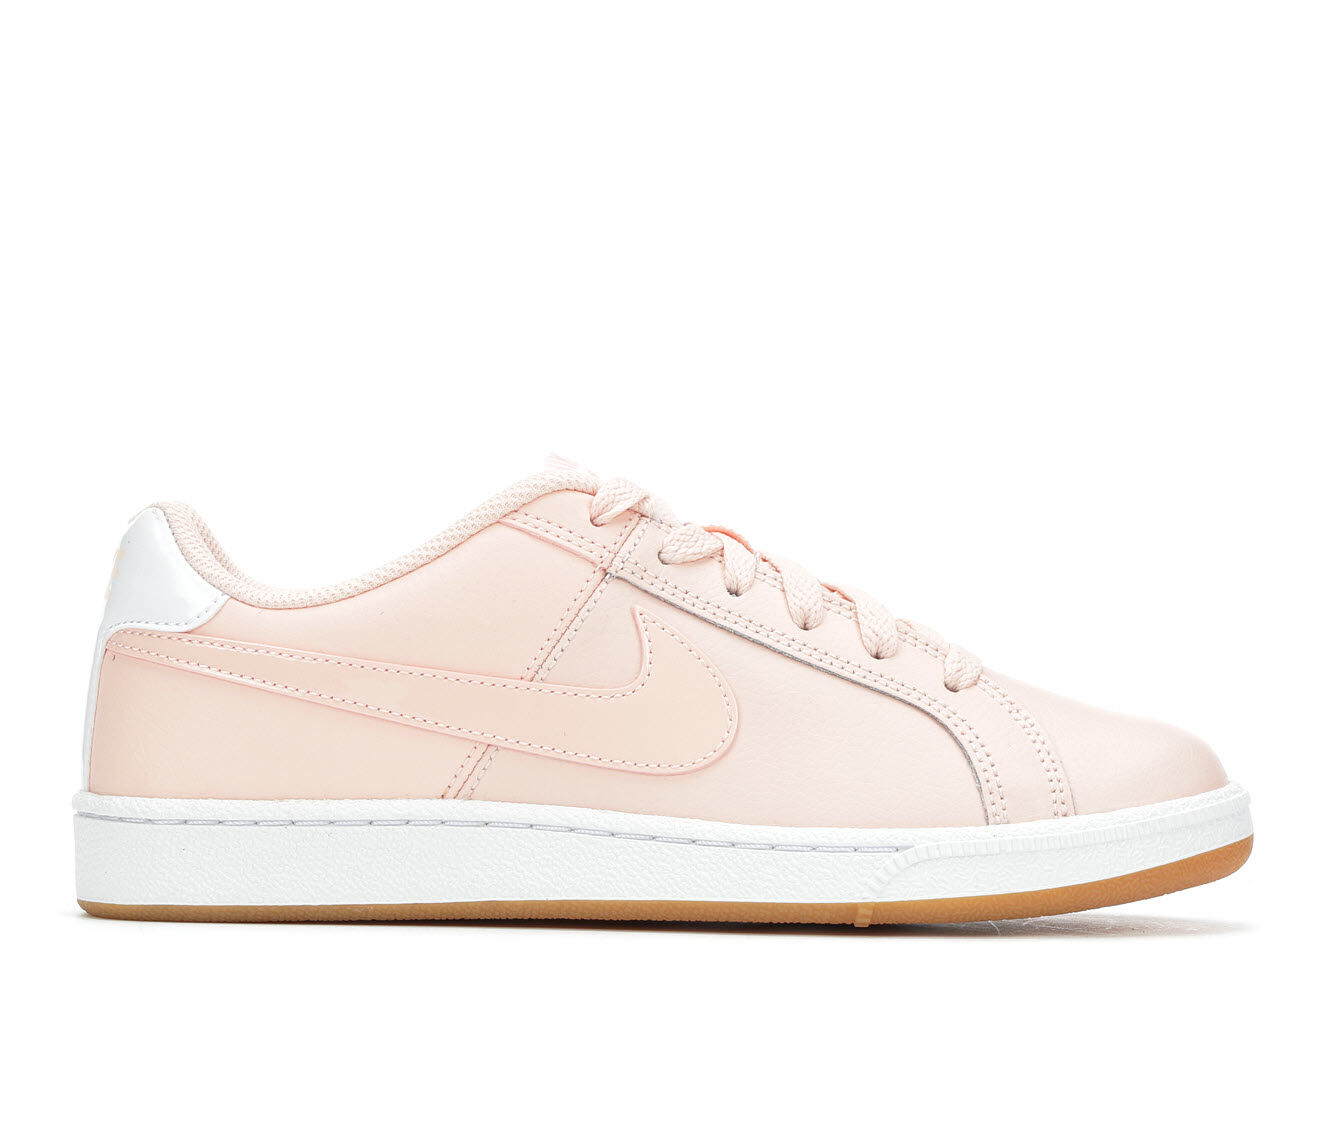 Women's Nike Court Royale Sneakers Coral/White